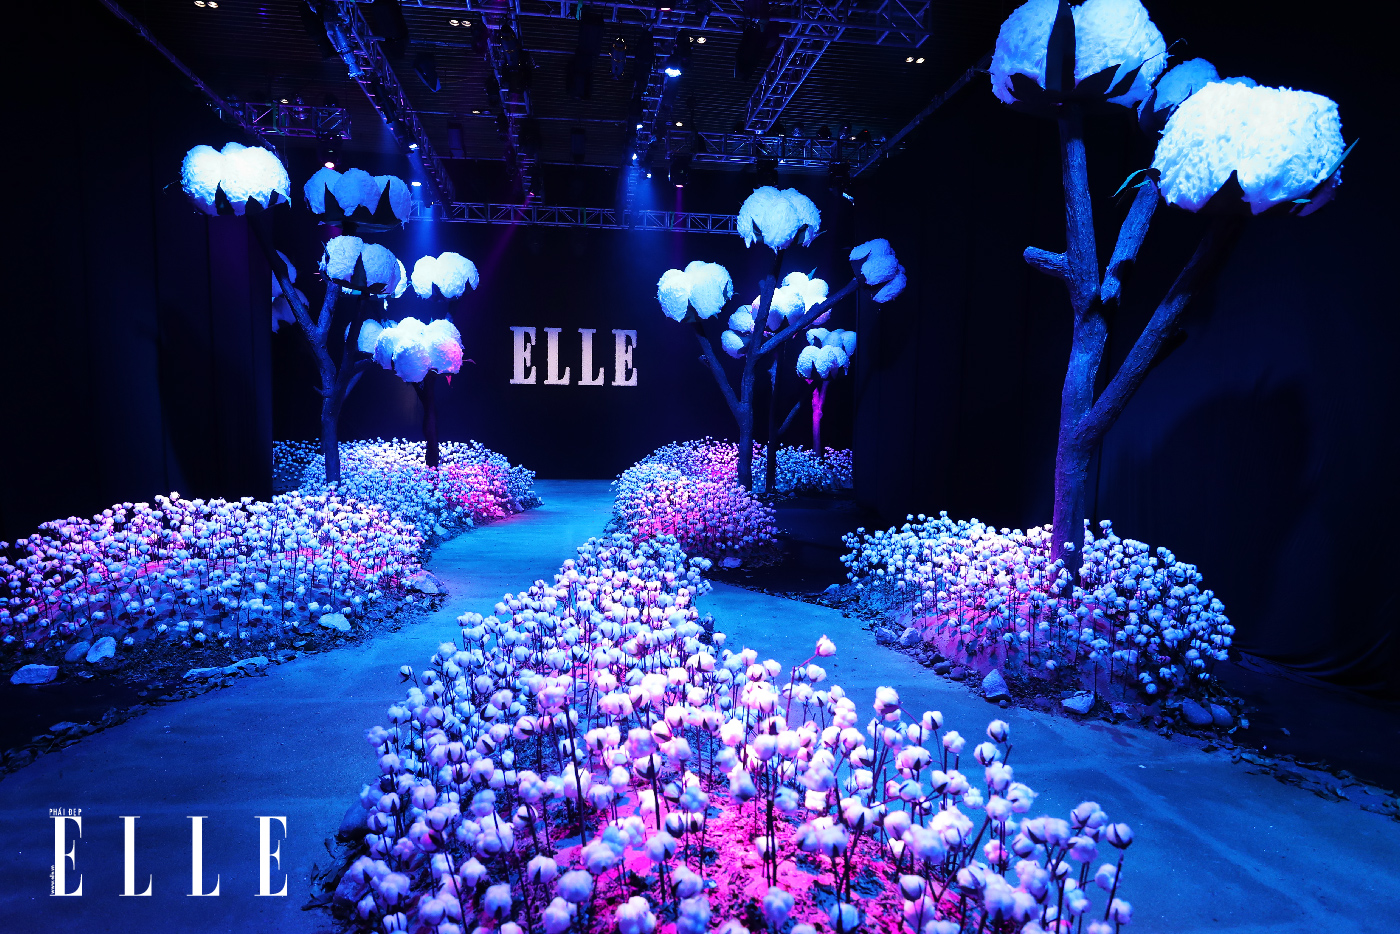 elle fashion runway show 2018 3